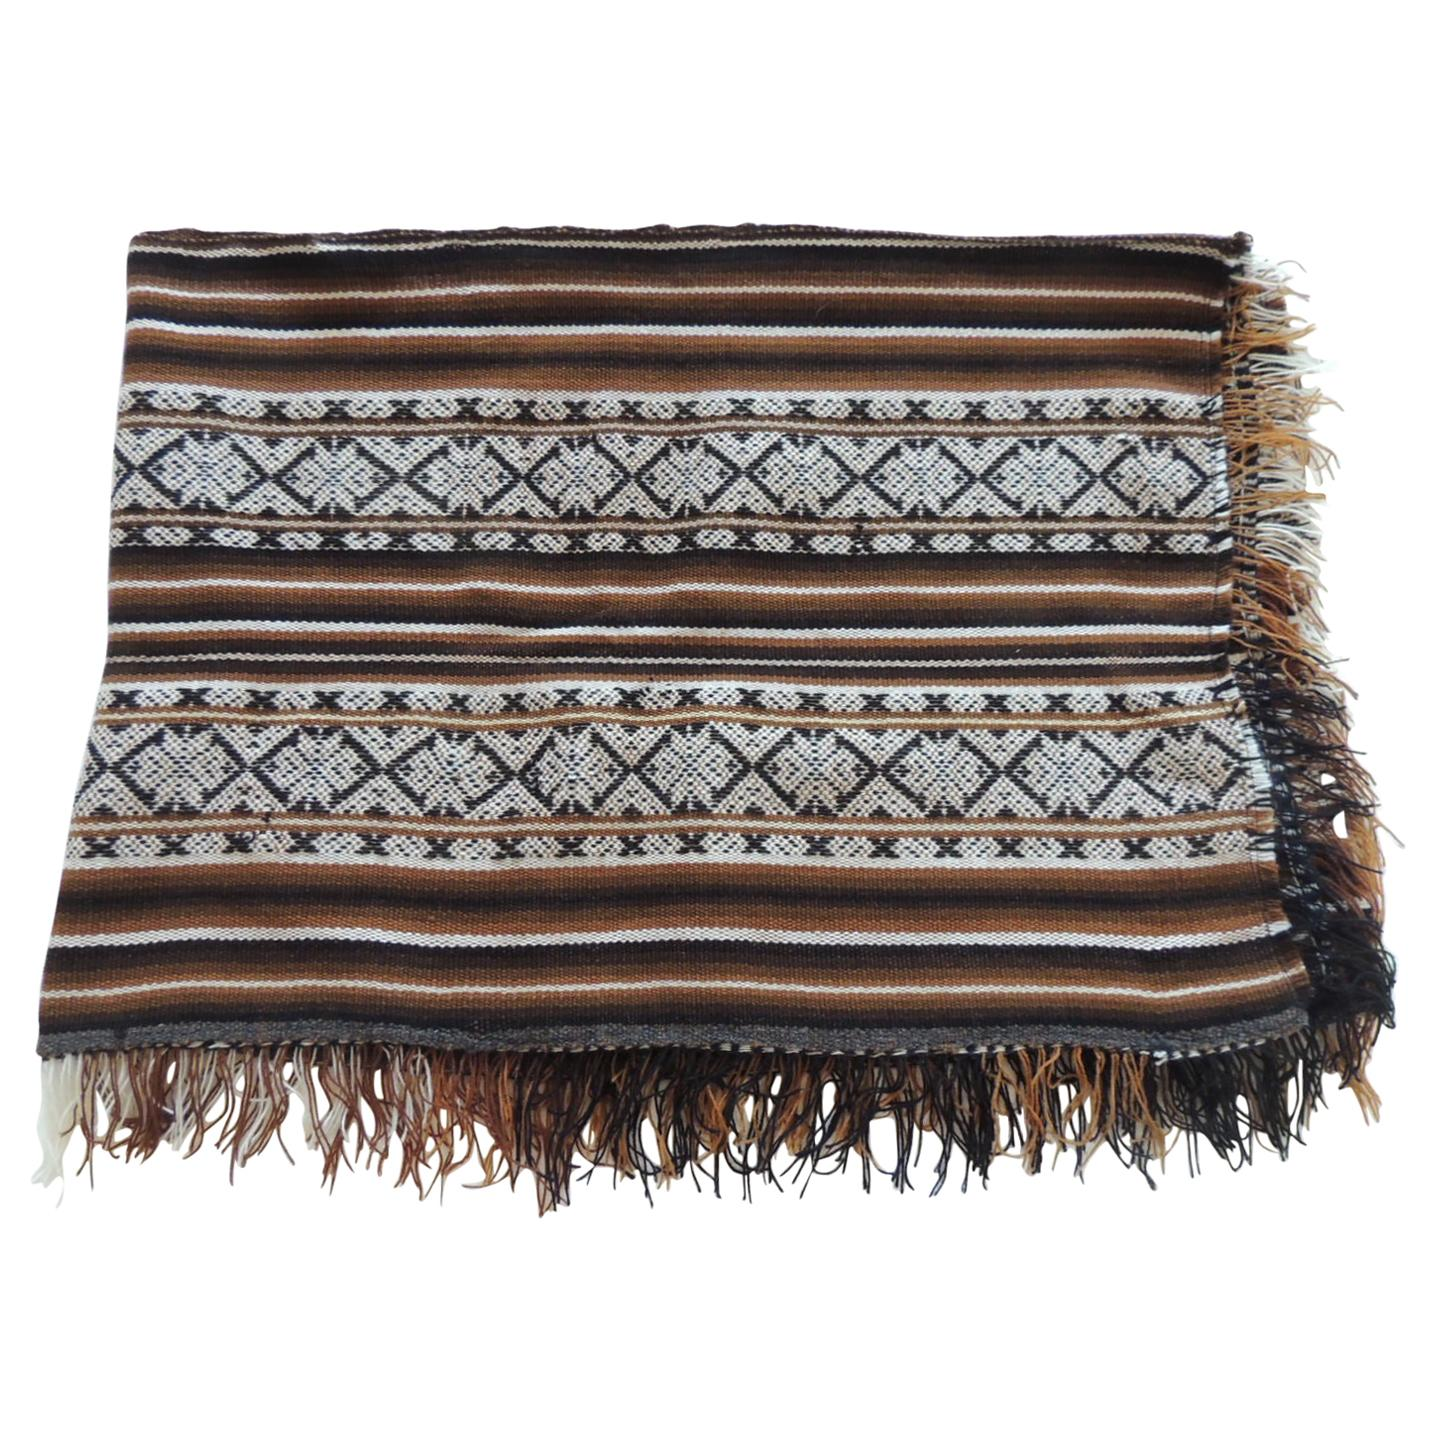 Vintage Brown and Black Stripe Woven Throw with Fringes